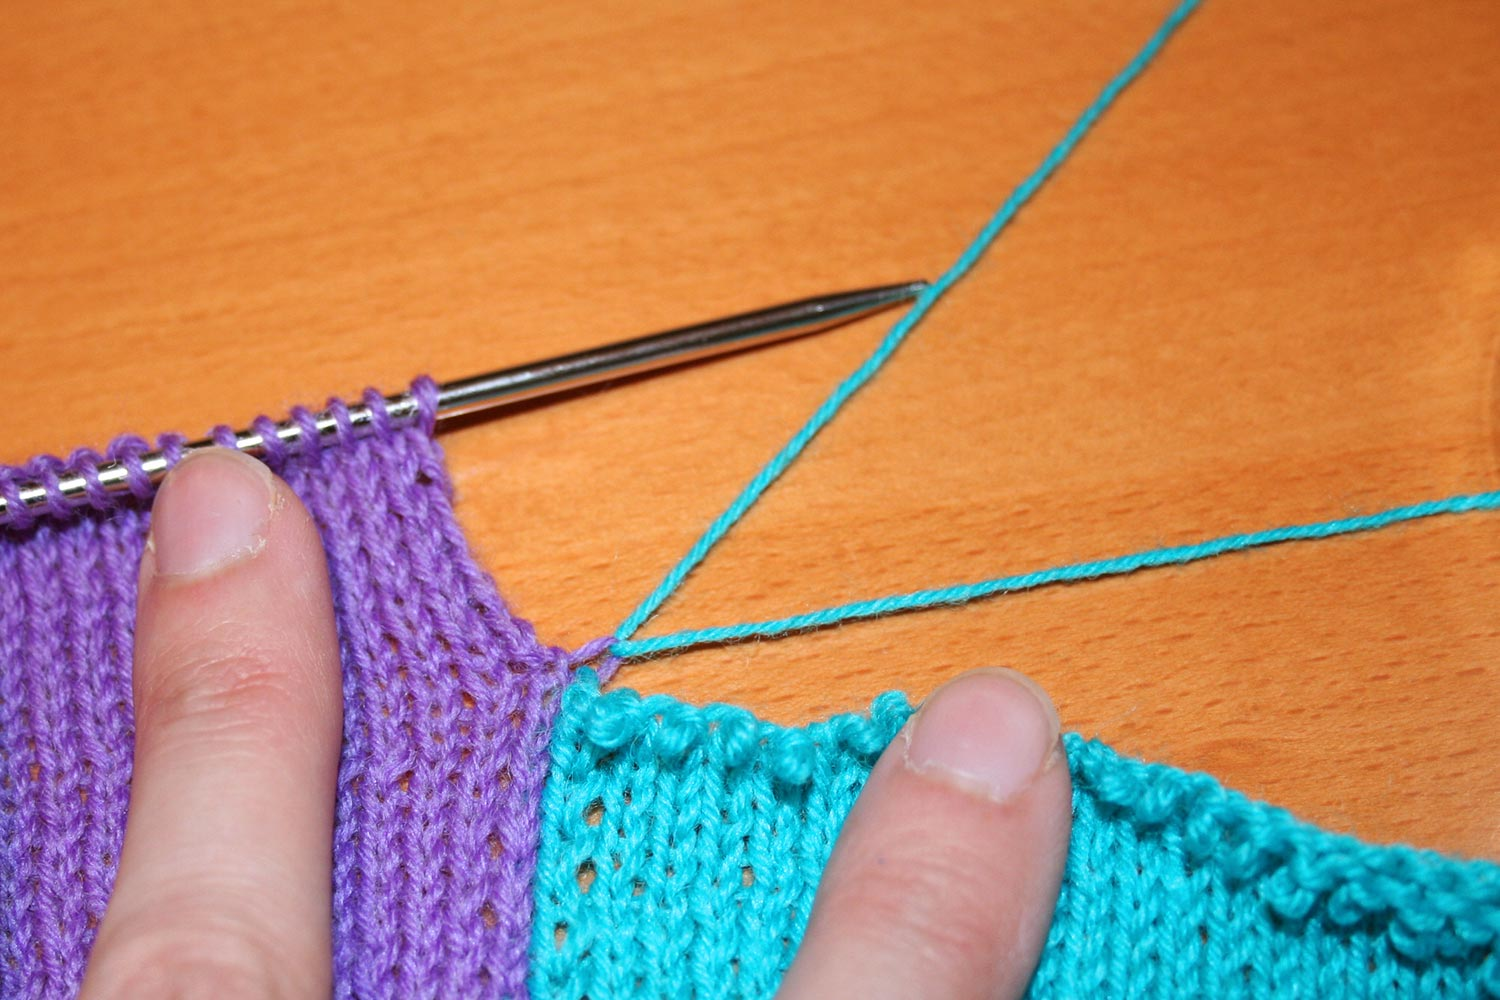 Ripping back the turquoise colour block while the purple block remains on the knitting needle. Yarn pulled taught to show where it joins to purple block.